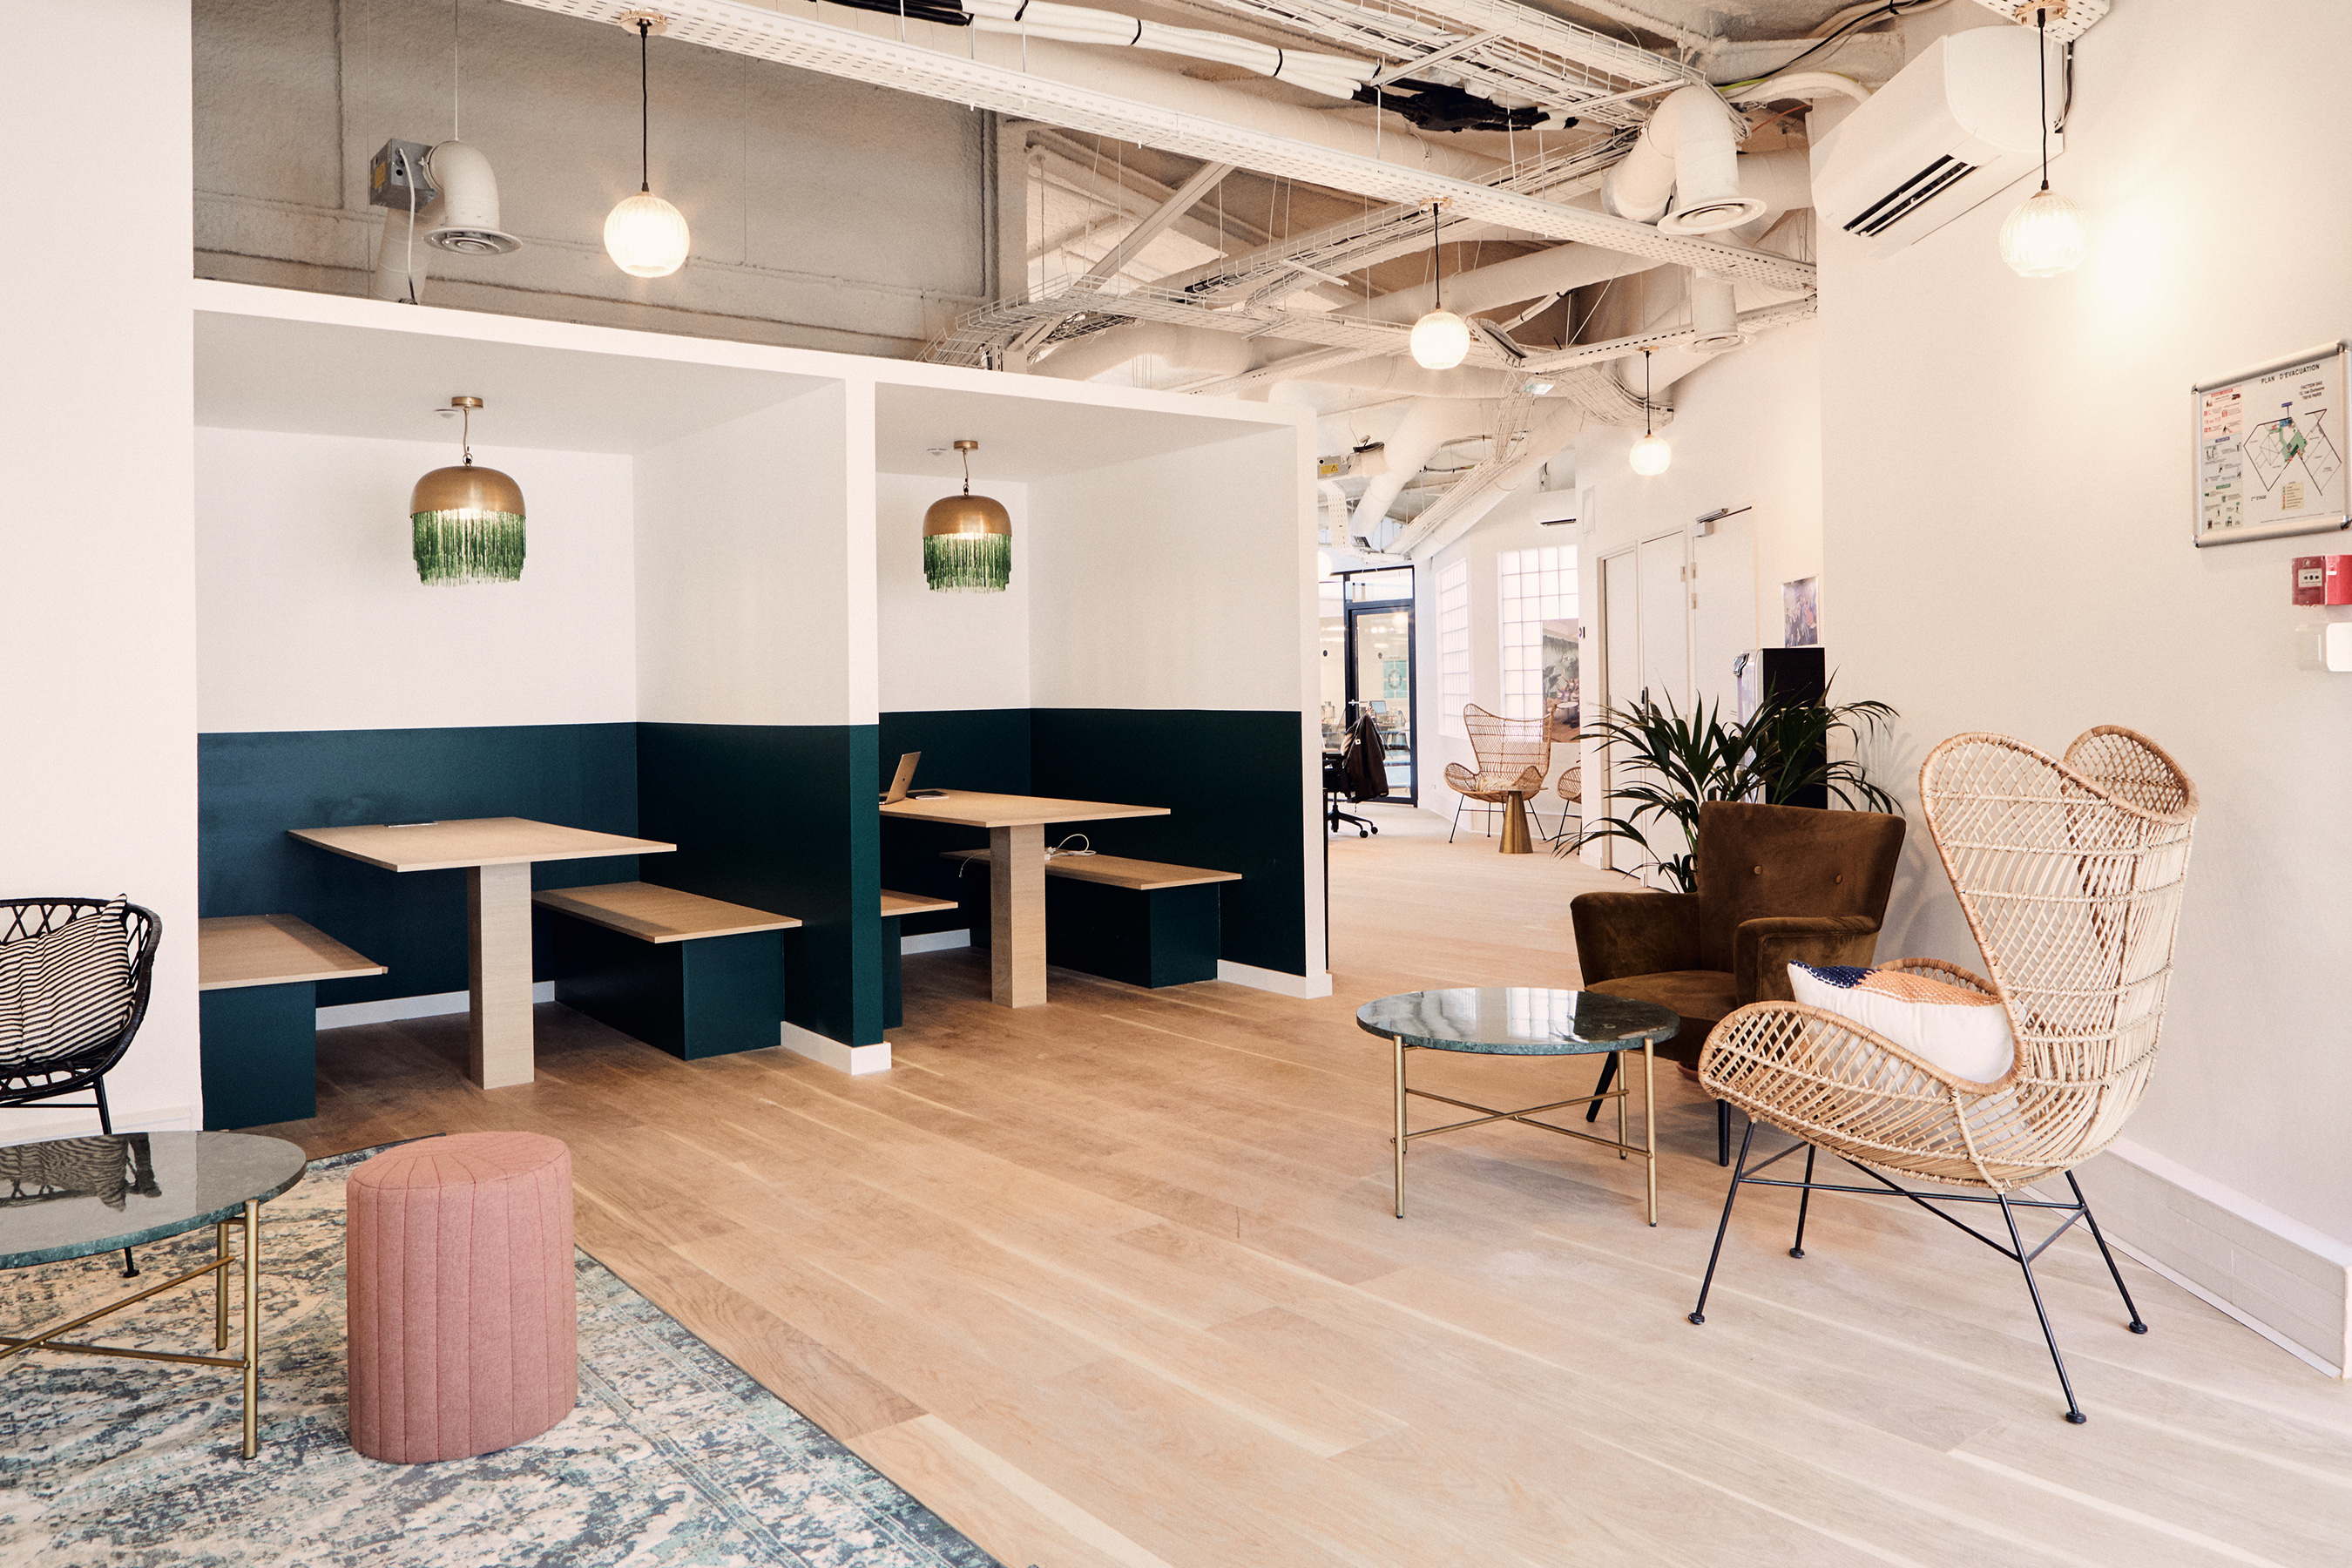 Too good to go - alcoves avec tables pour travailler